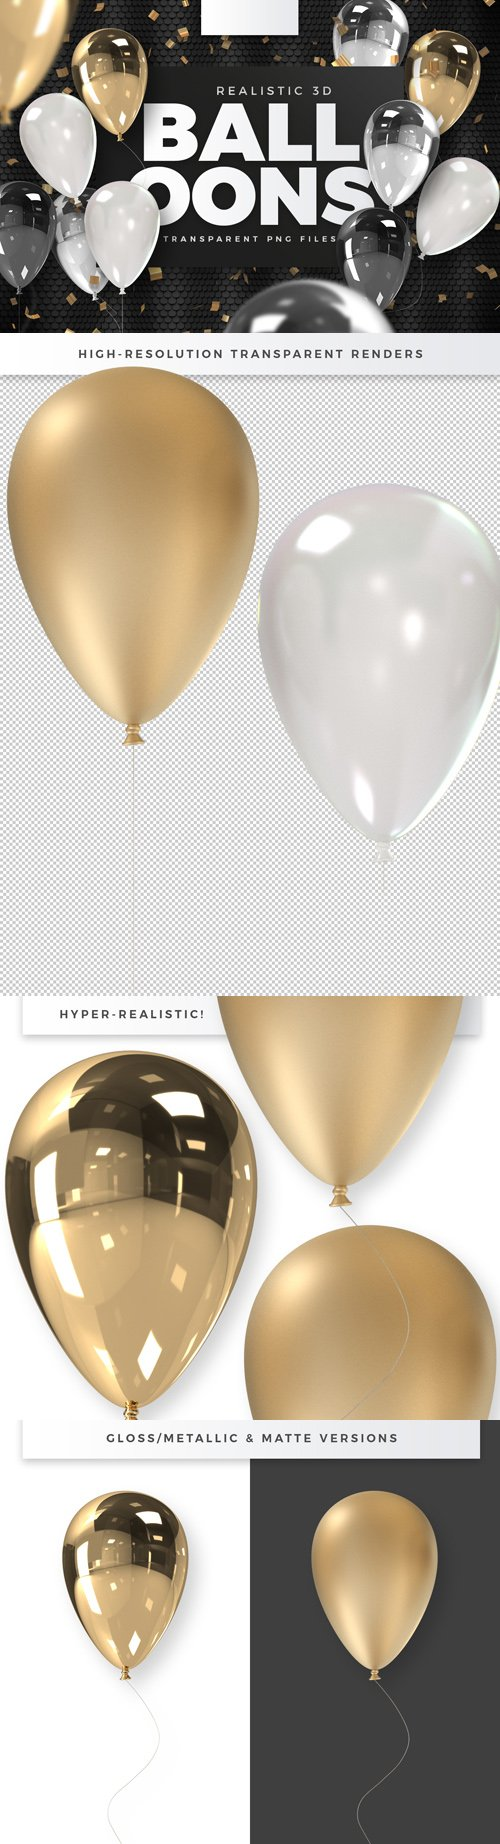 Realistic 3D Balloons - 3D Renders